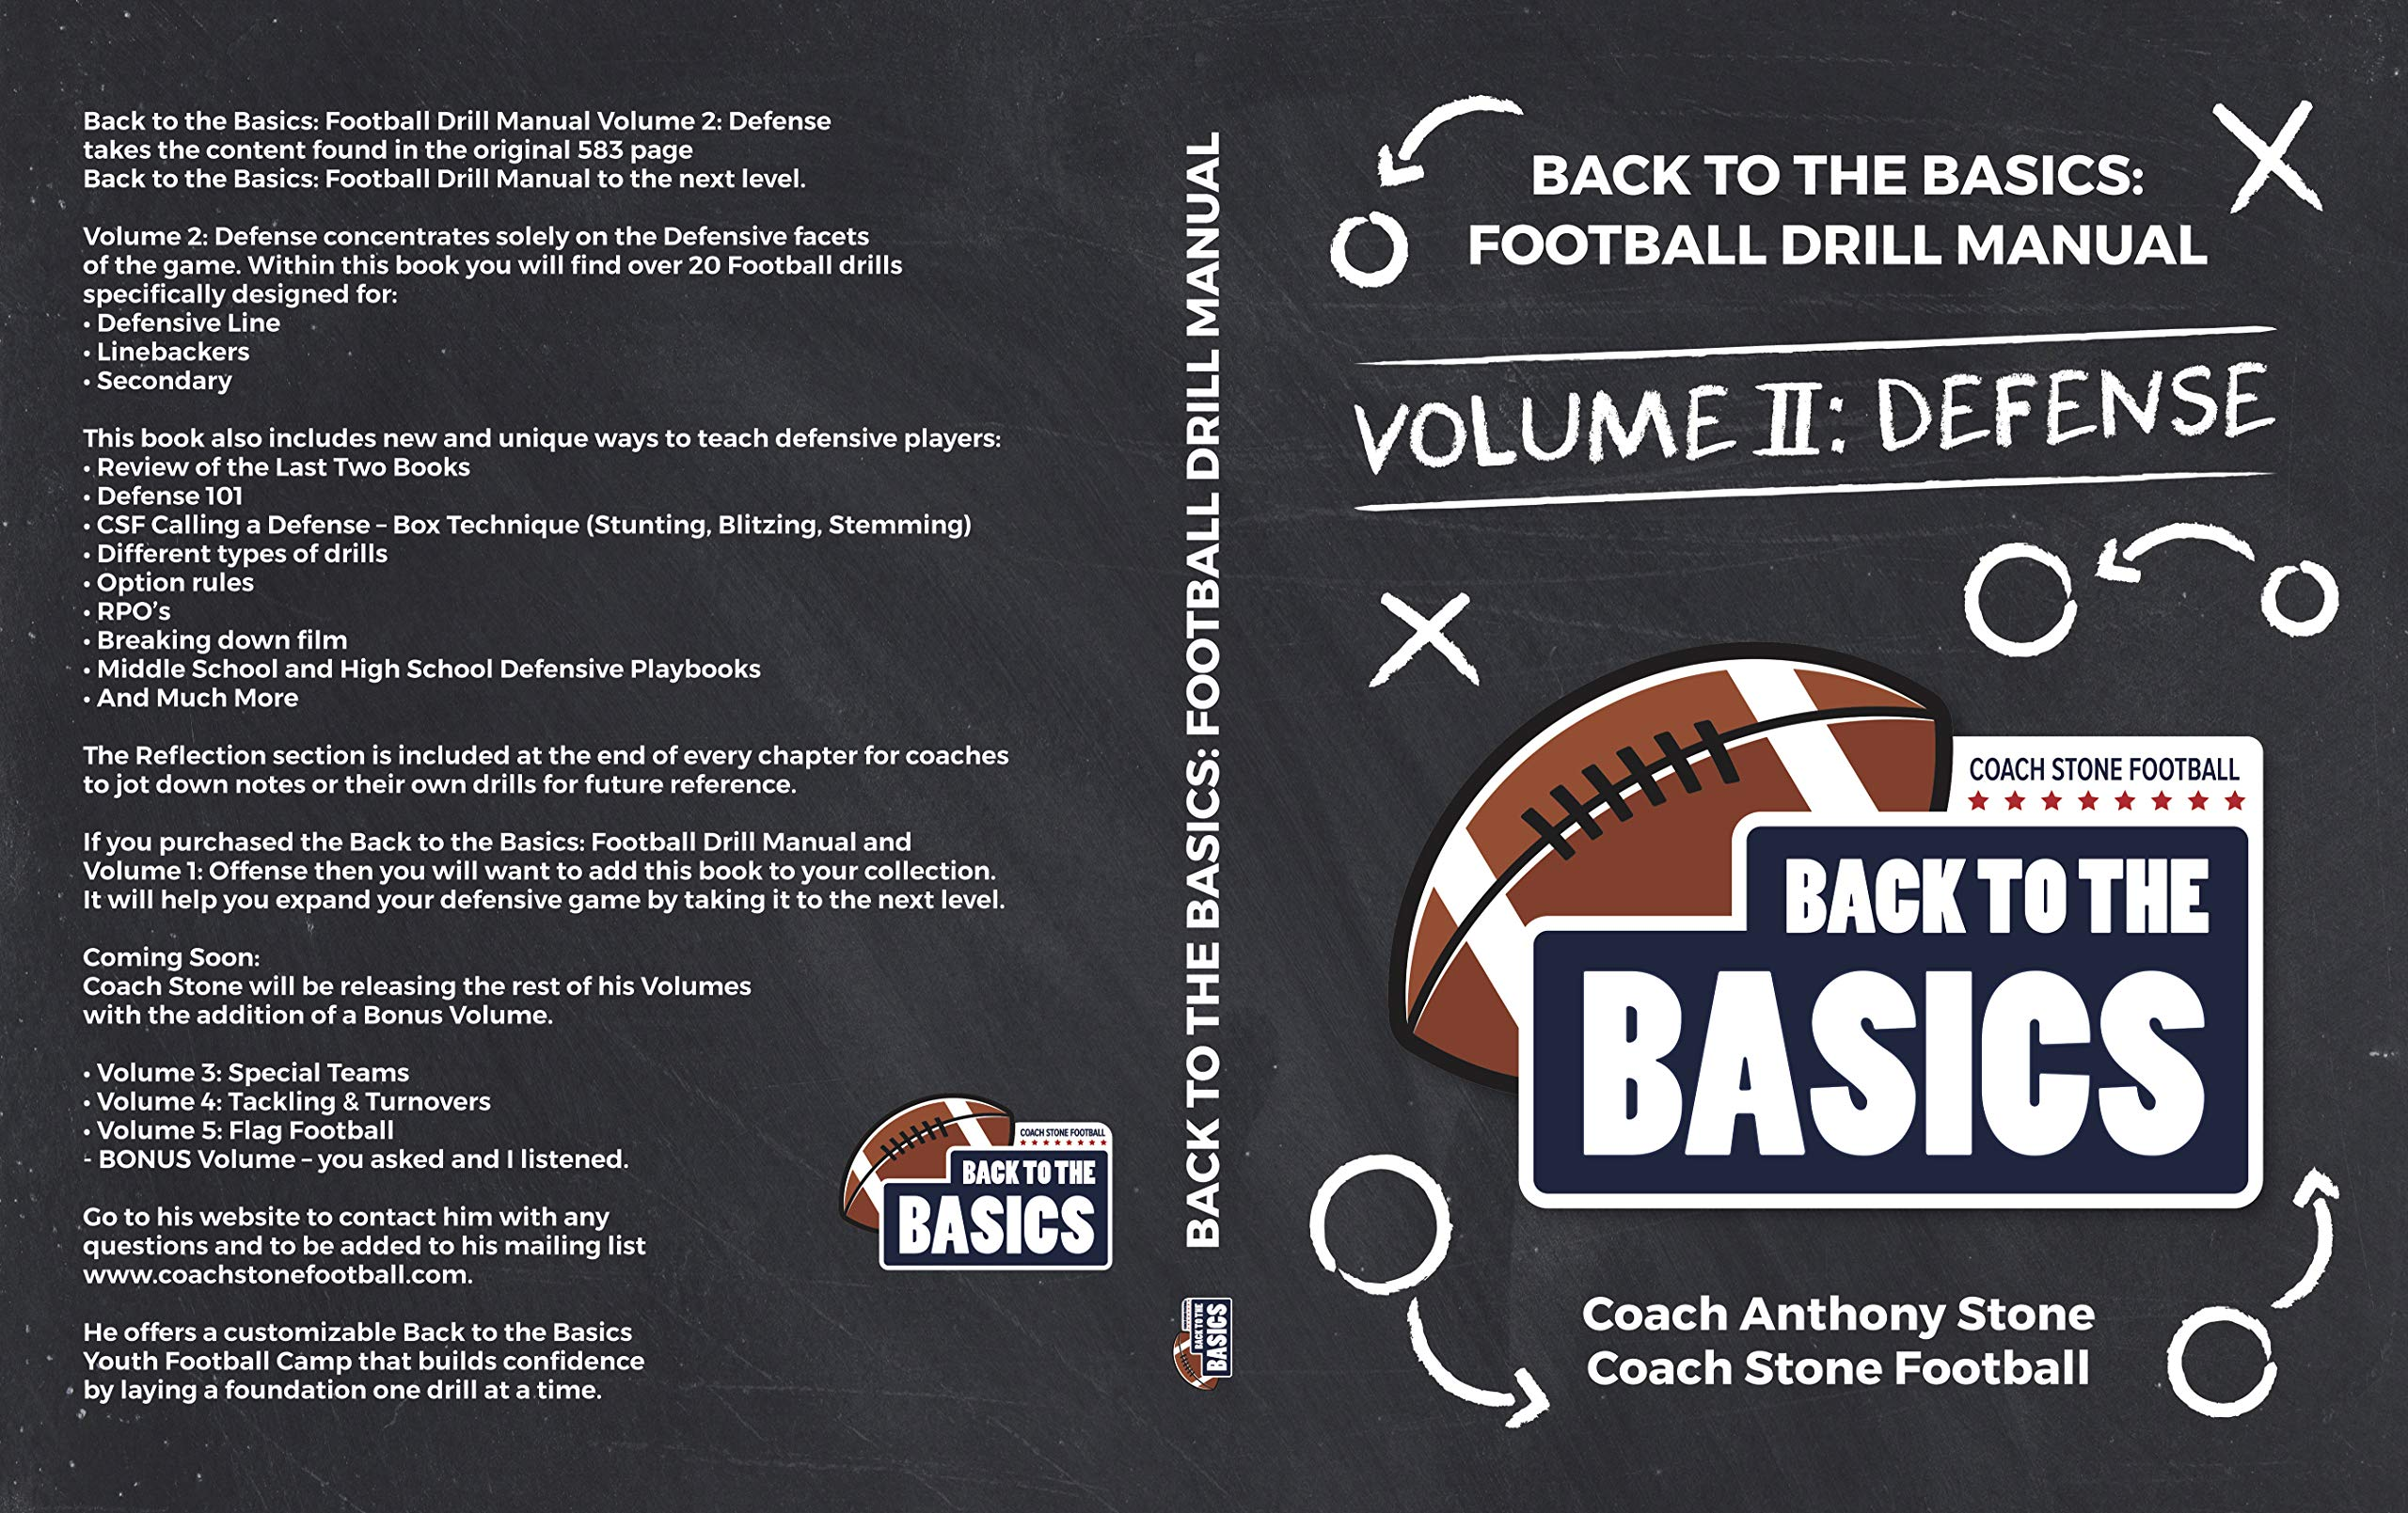 Image OfBack To The Basics: Football Drill Manual Volume 2: Defense (English Edition)